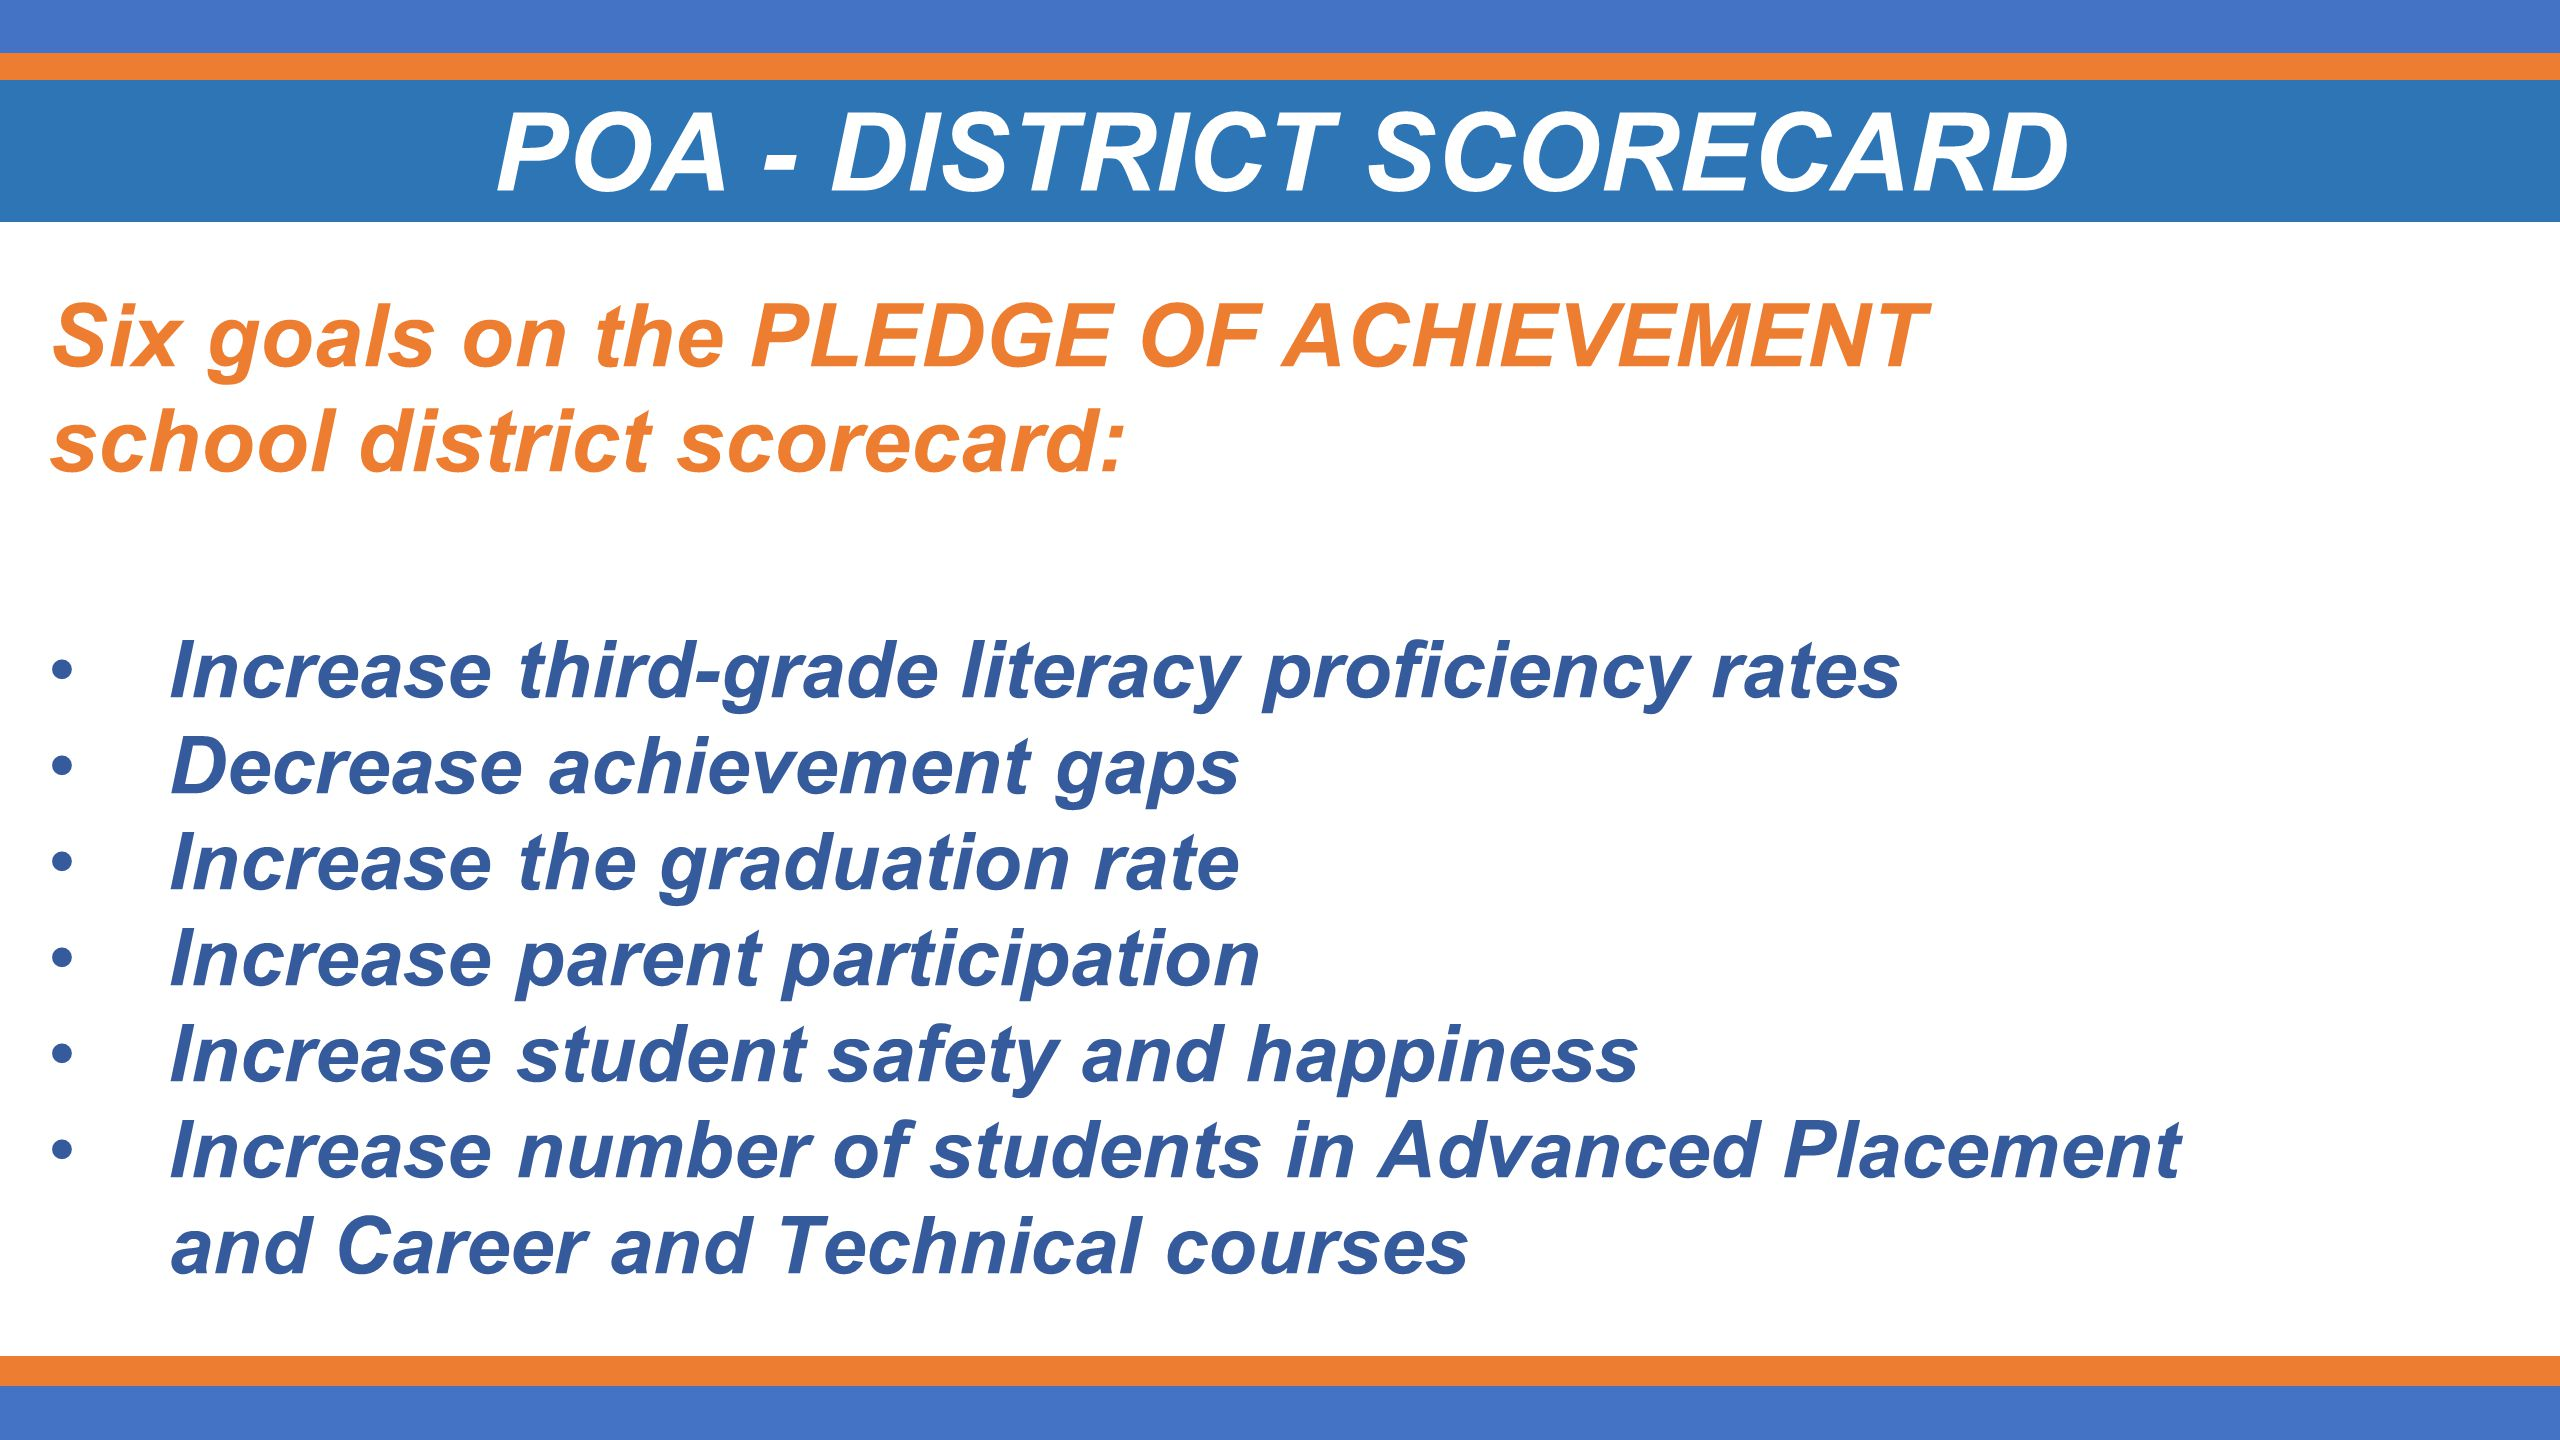 PLEDGE OF ACHIEVEMENT Strategic Targets for PLEDGE: Annually reduce the percentage point gap between proficiency of highest and lowest scoring subgroups Instructional strategies that reach diverse learners Opportunities for real-time feedback to provide swift responses